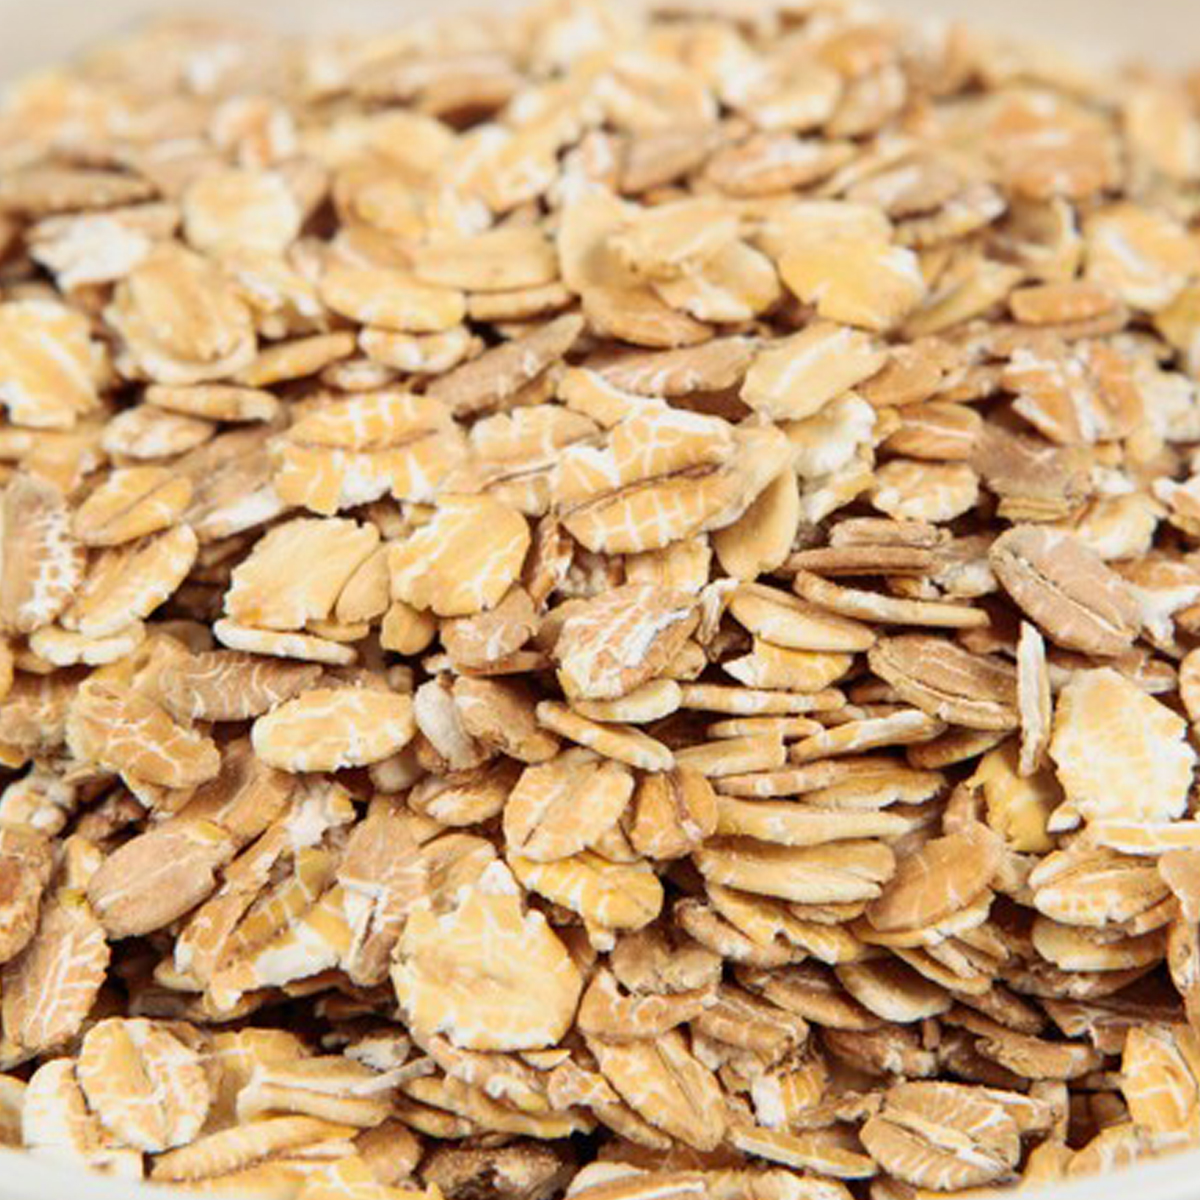 6 Grain Rolled Cereal Mix West Mountain Grains